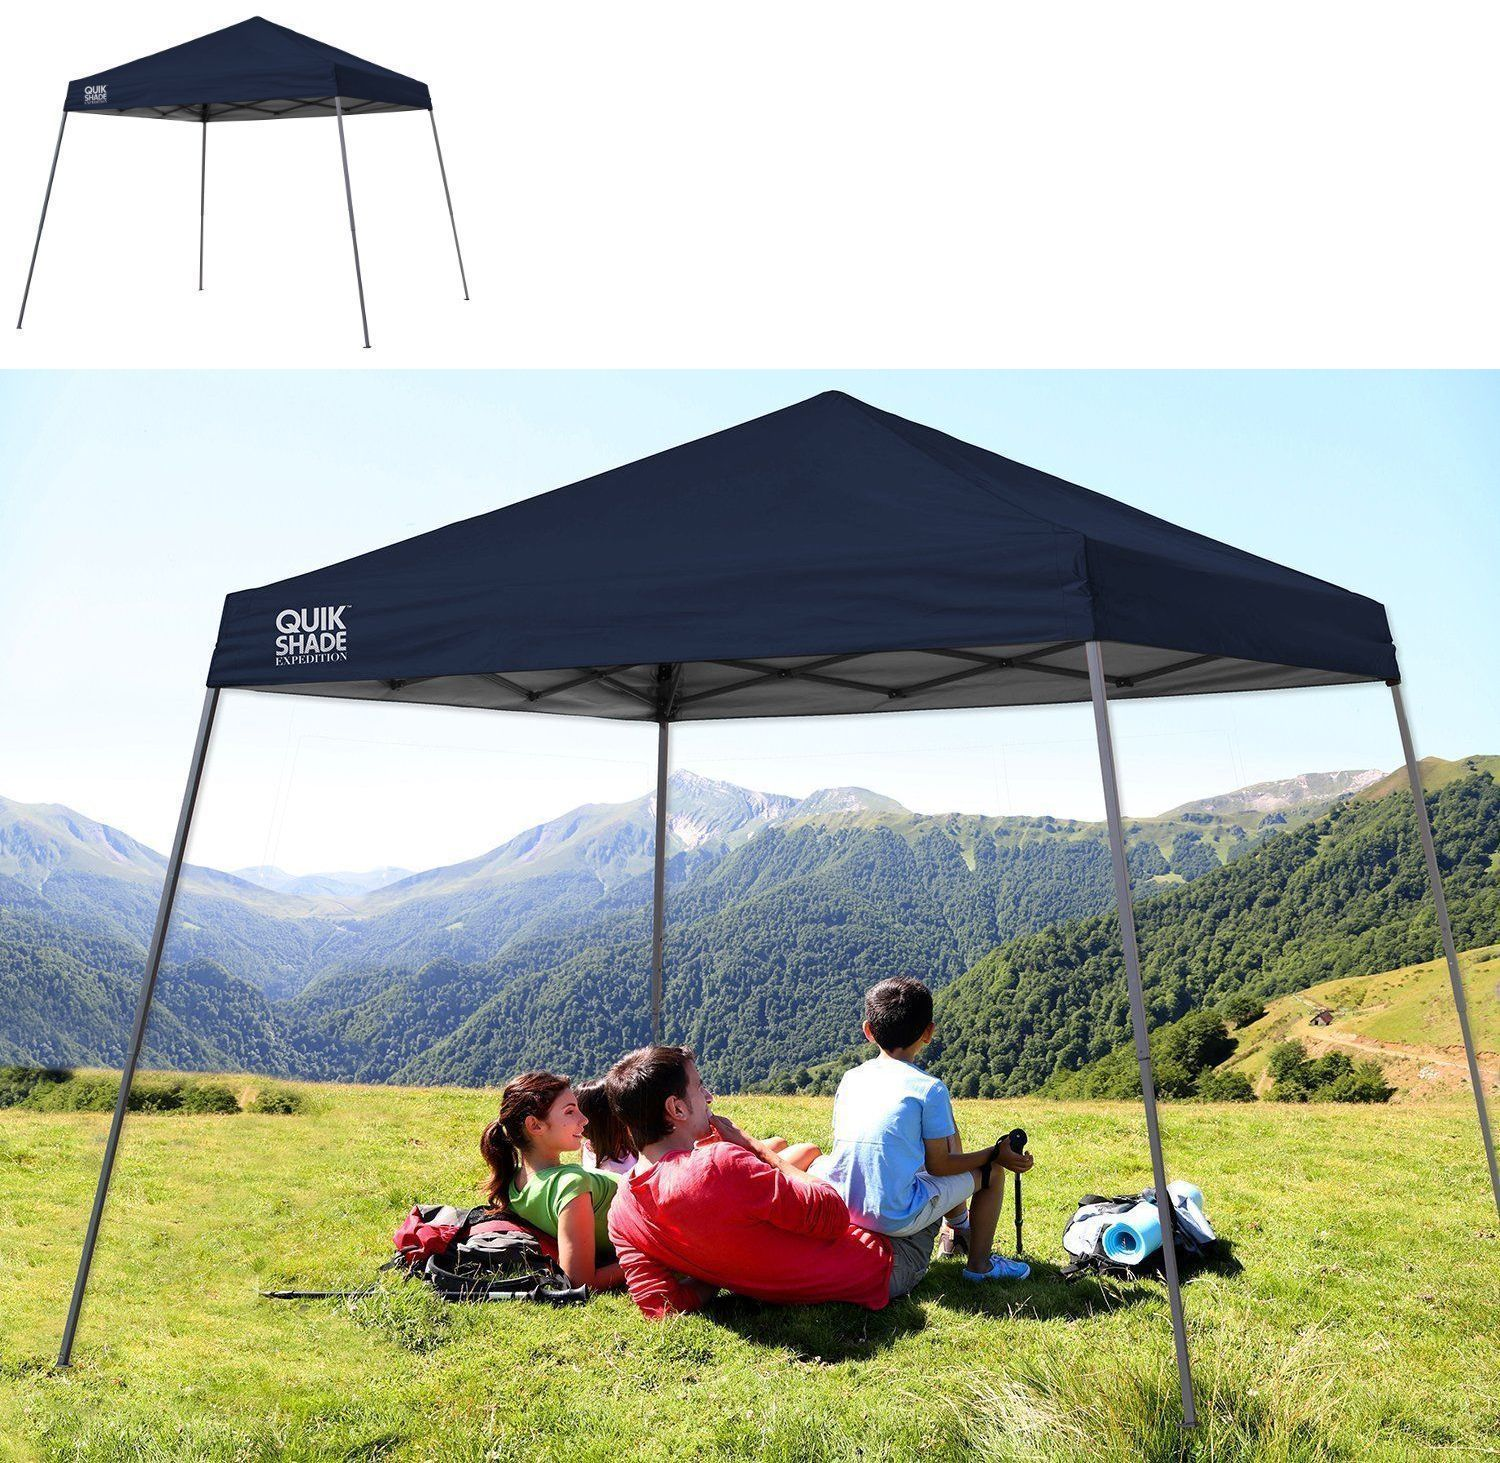 Canopies and Shelters 179011 Pop Up Canopy 10X10 Easy Instant Shelter Shade Portable Tent Picnic  sc 1 st  Pinterest & Canopies and Shelters 179011: Pop Up Canopy 10X10 Easy Instant ...